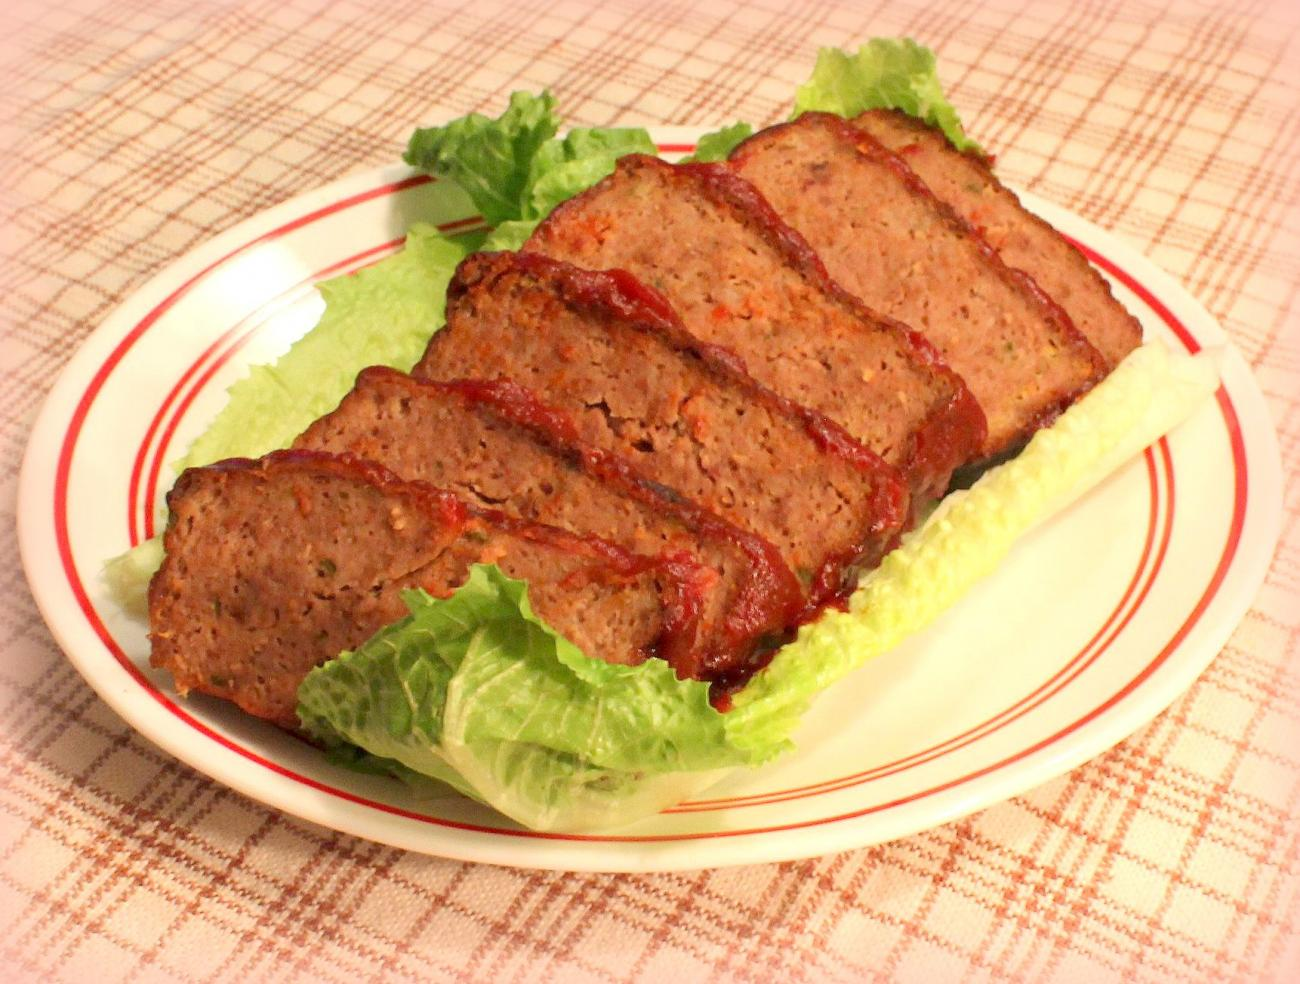 Meatloaf, 4marknelson via Wikimedia Commons